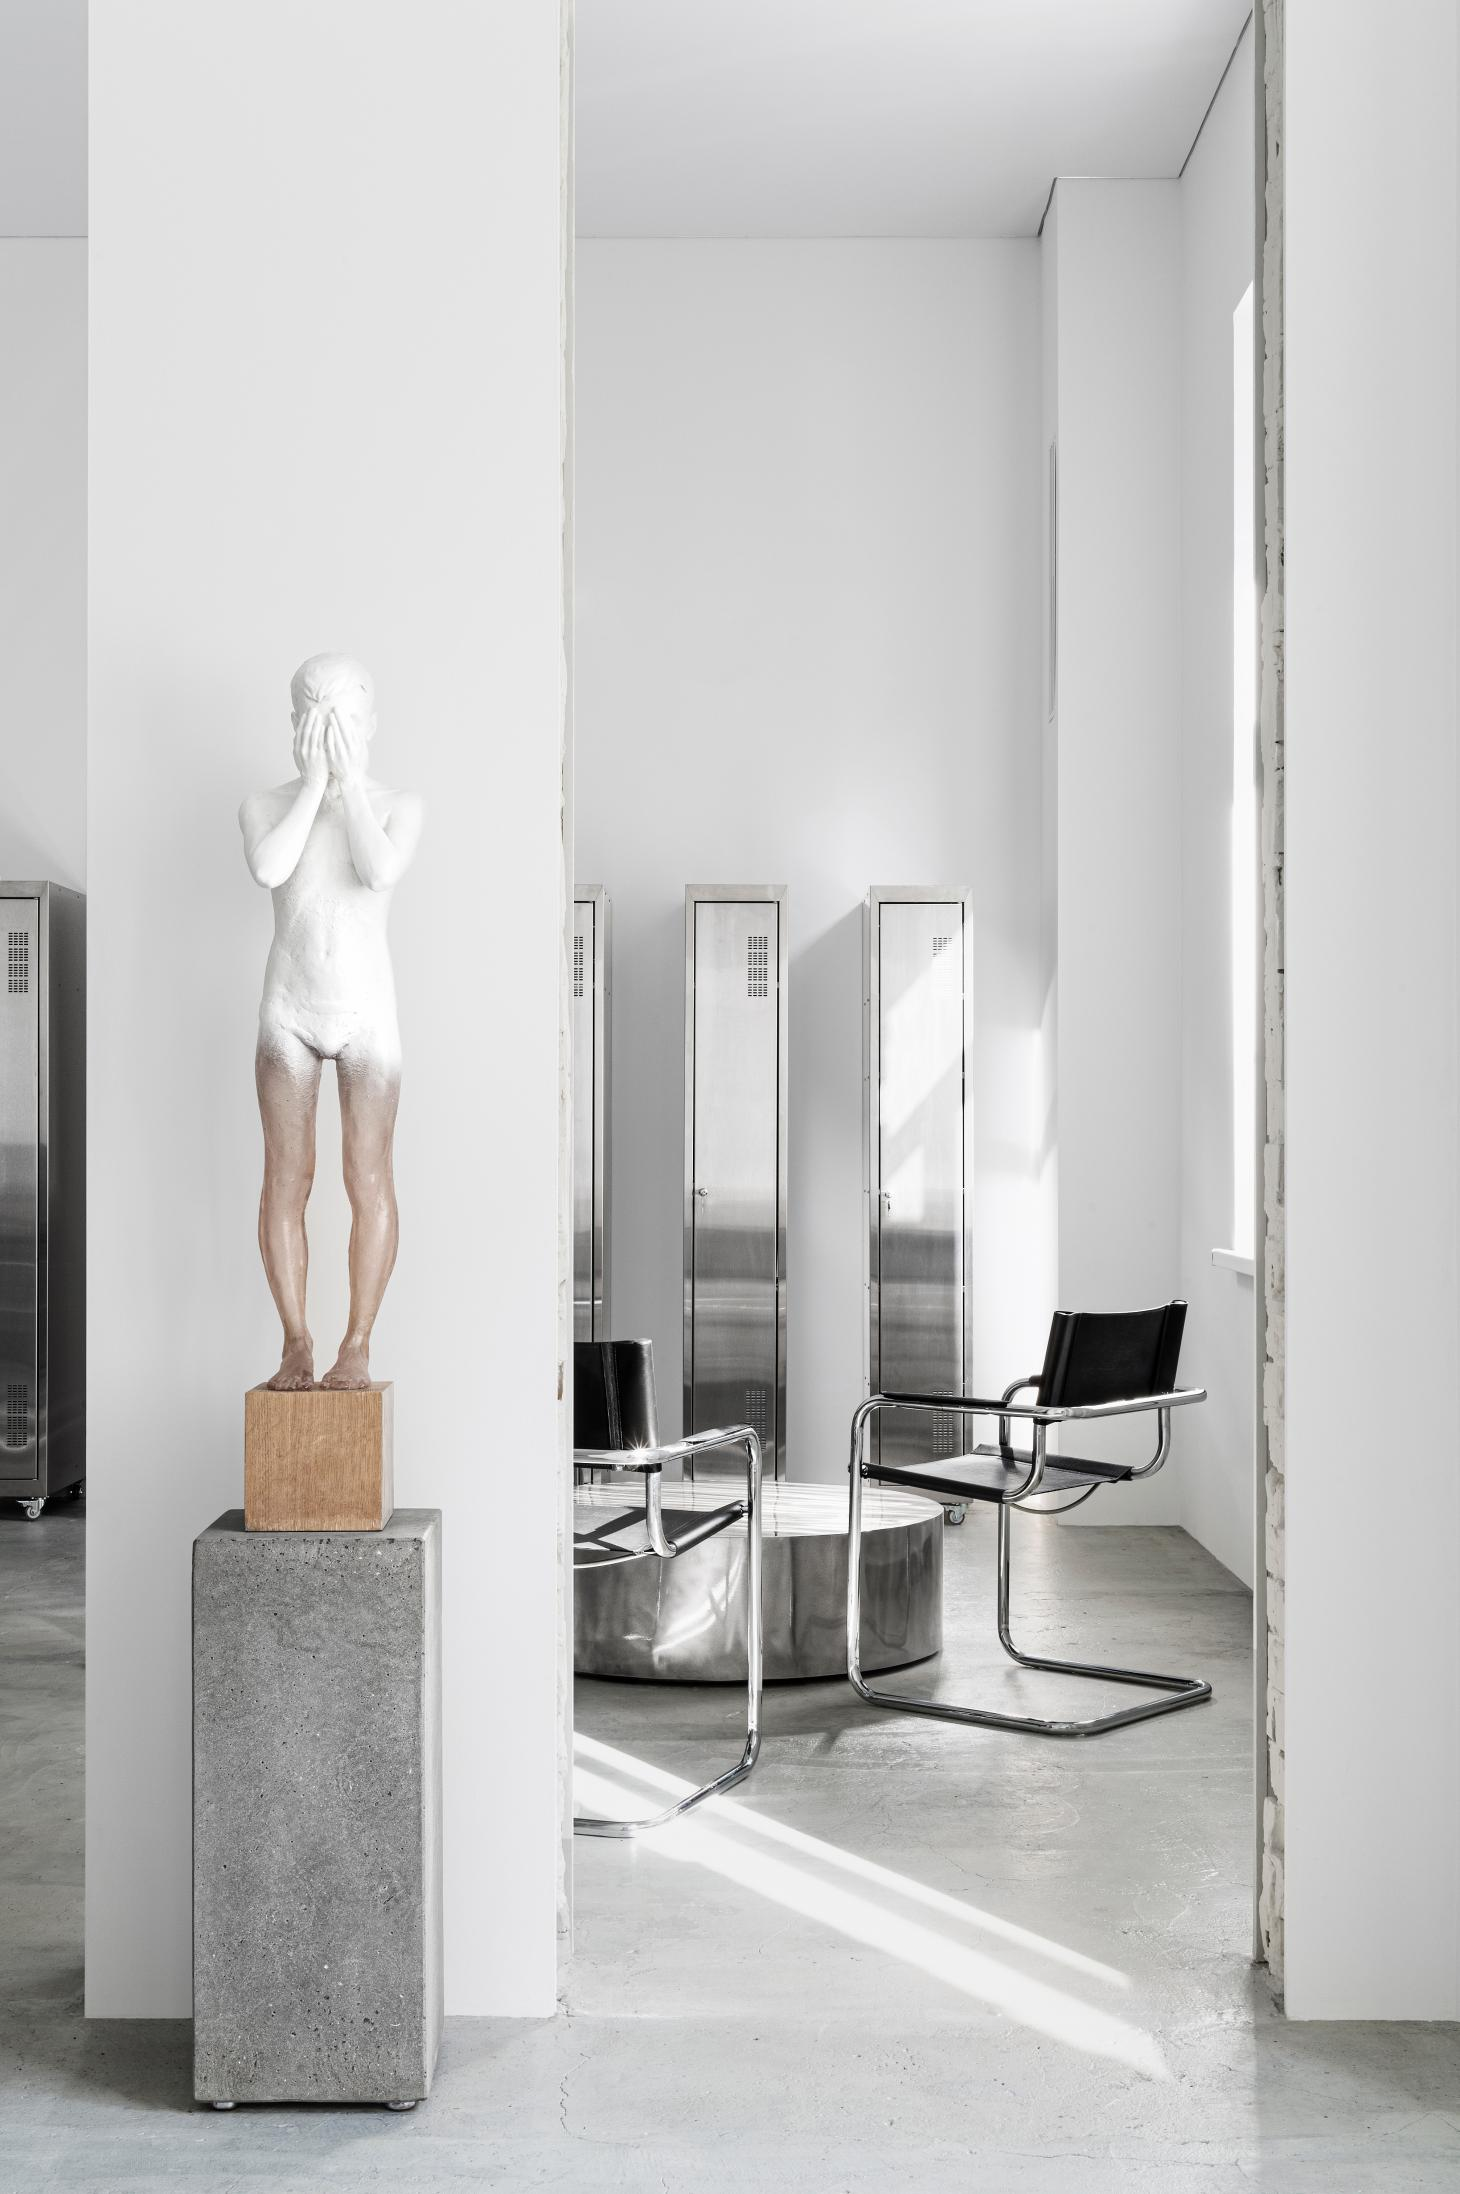 19 tattoo studio in Kiev Ukraine. With black Mark Stam chairs, sculpture of a young boy, and art instillation by propro